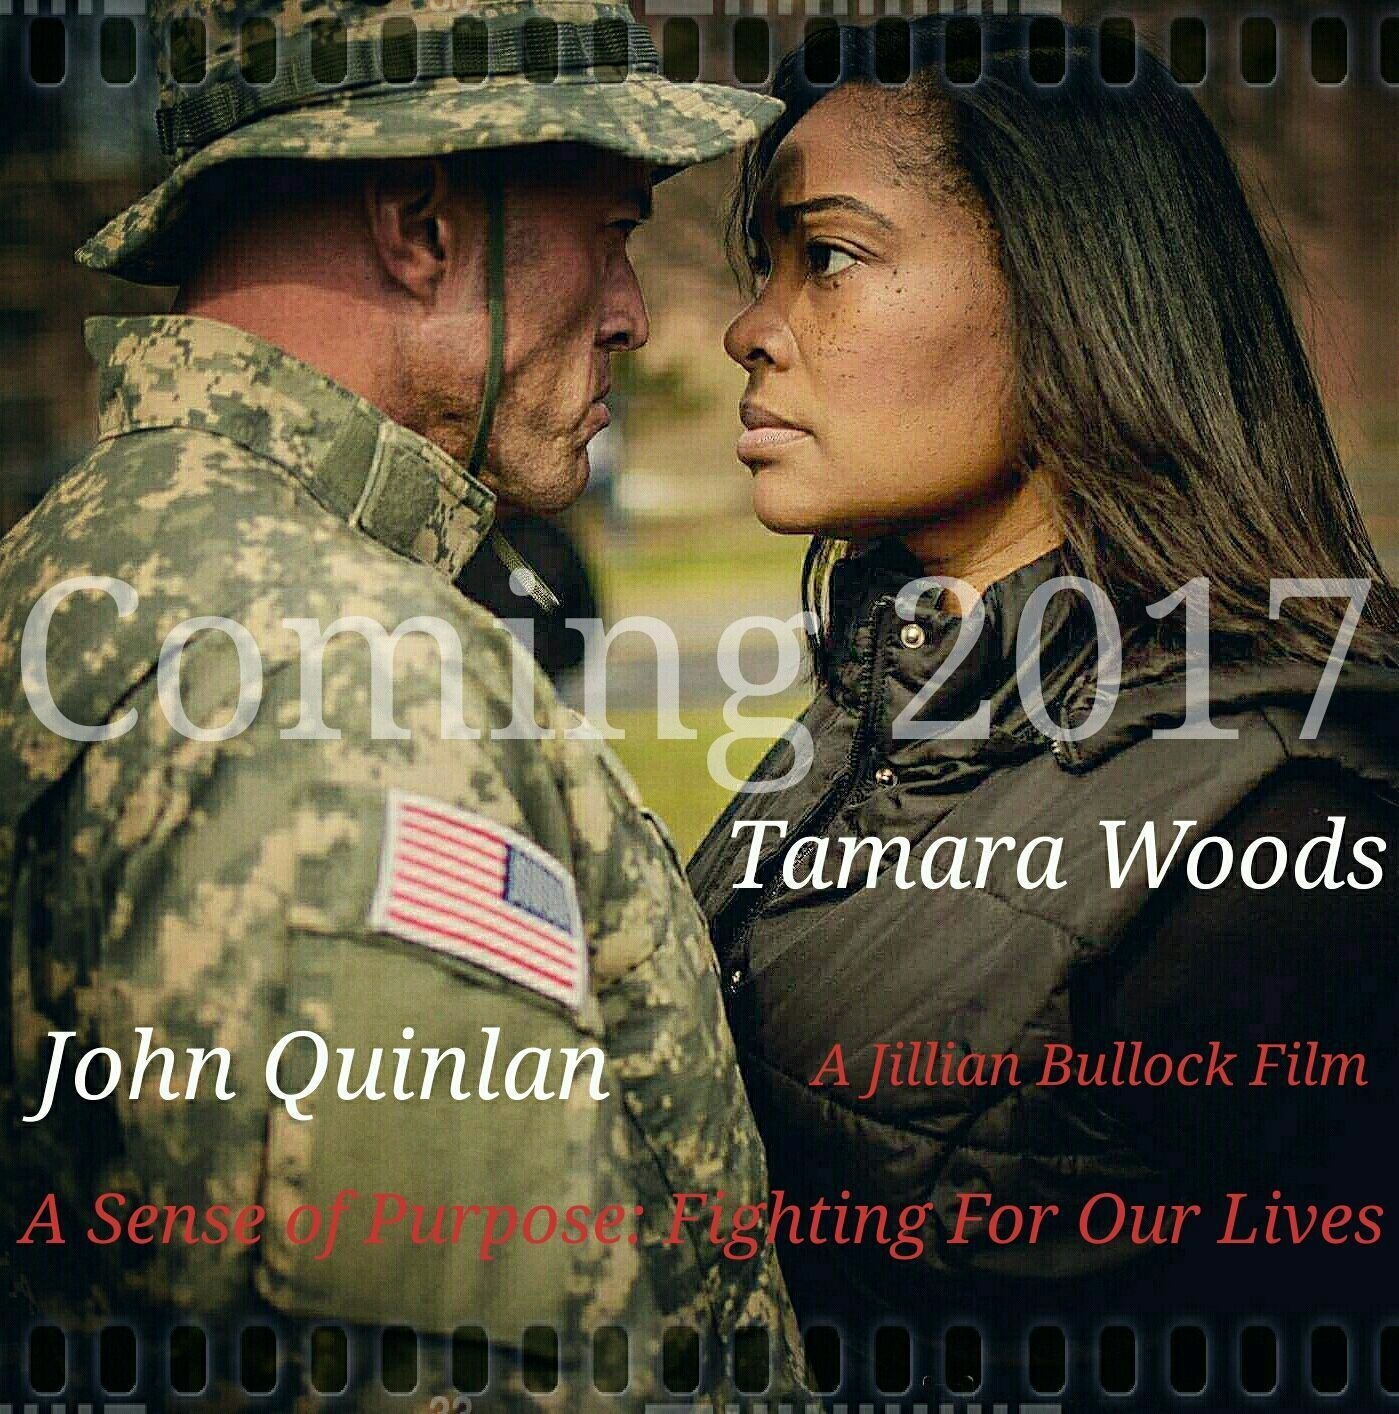 A Sense of Purpose Fighting For Our Lives - Tamara Woods & John Quinlan by Jillian Bullock #JohnQuinlan #JillianBullock